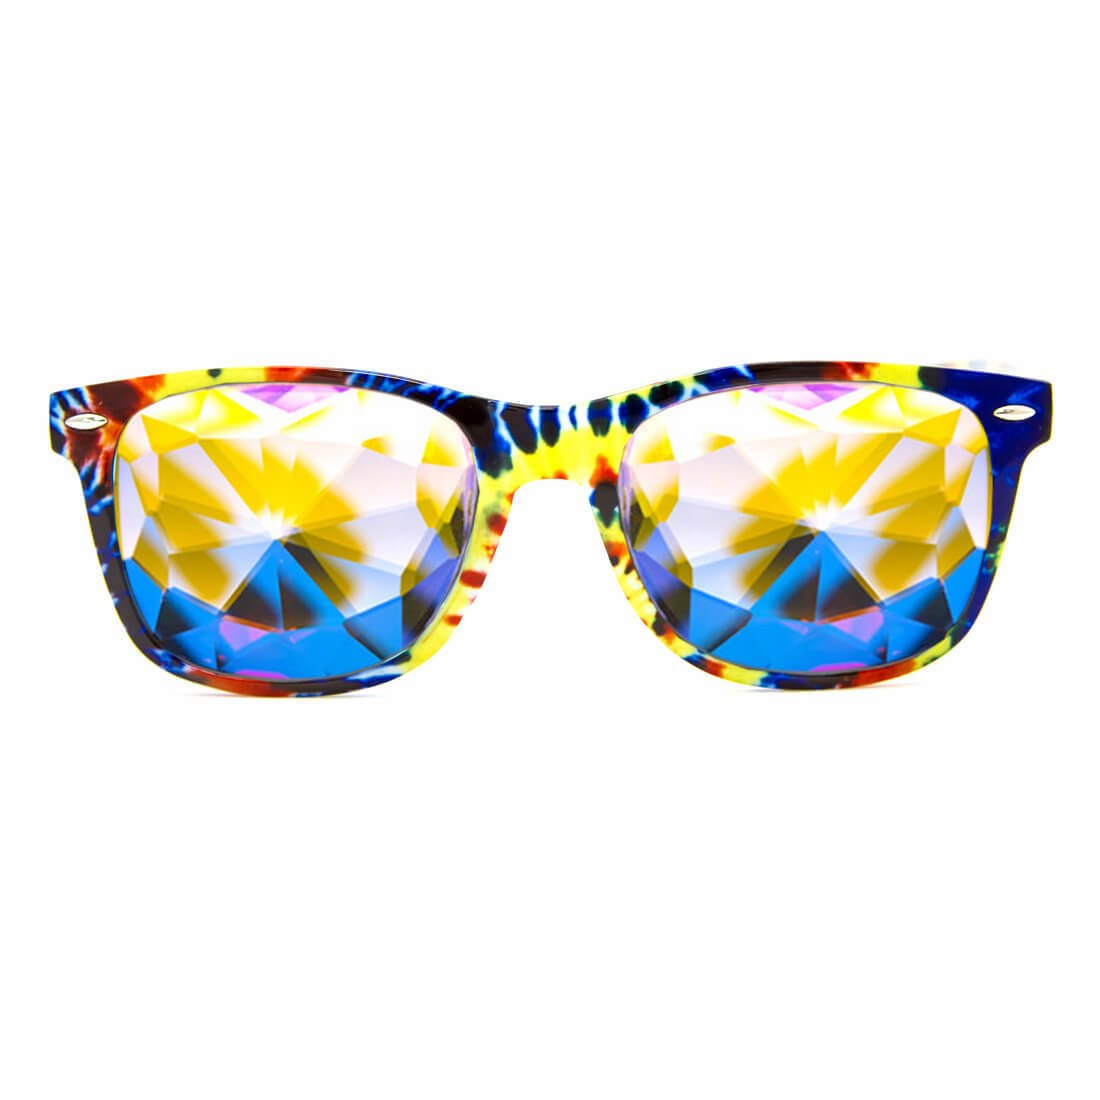 GloFX Tie Dye Kaleidoscope Glasses - Rainbow EDM Rave Light Diffraction Eyewear Edge Cut